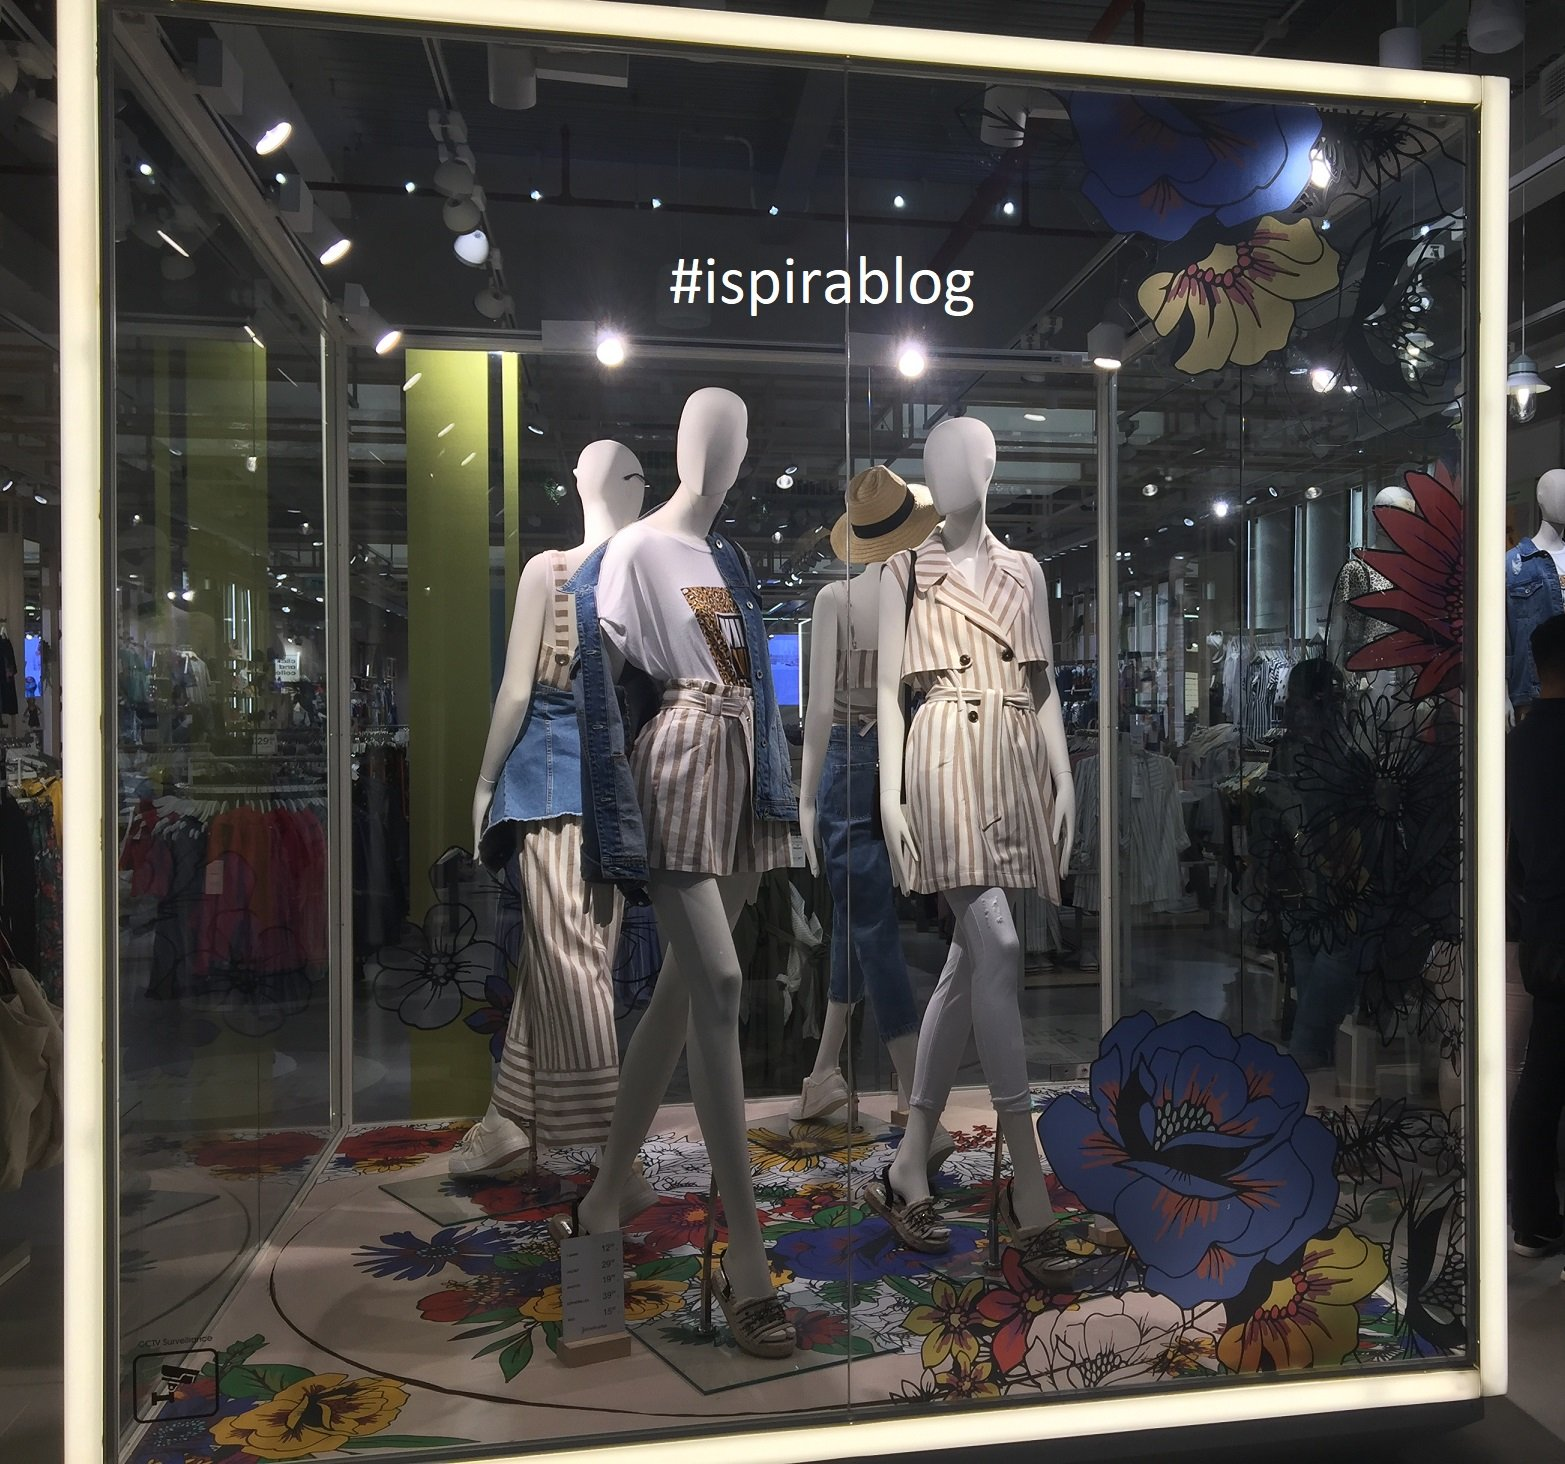 68a776dd0c1 ... Stradivarius - London - Spring 2018 - Womenswear Collection - white and  beige striped outfits with jeans shirts 2018-06-04 ...